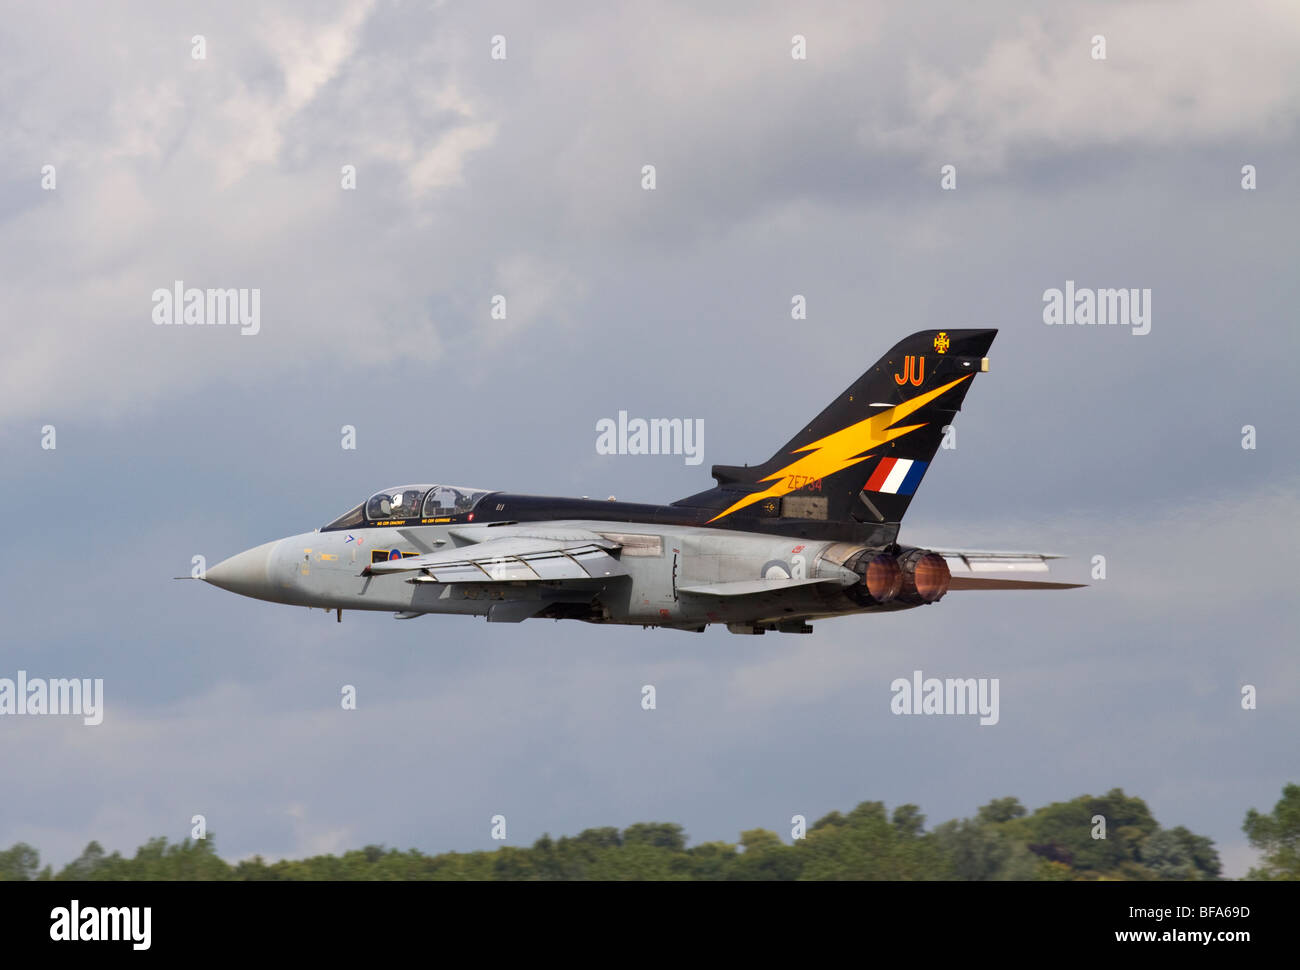 ZE734 Royal Air Force Panavia Tornado F3 jet fighter taking off from Fairford - Stock Image